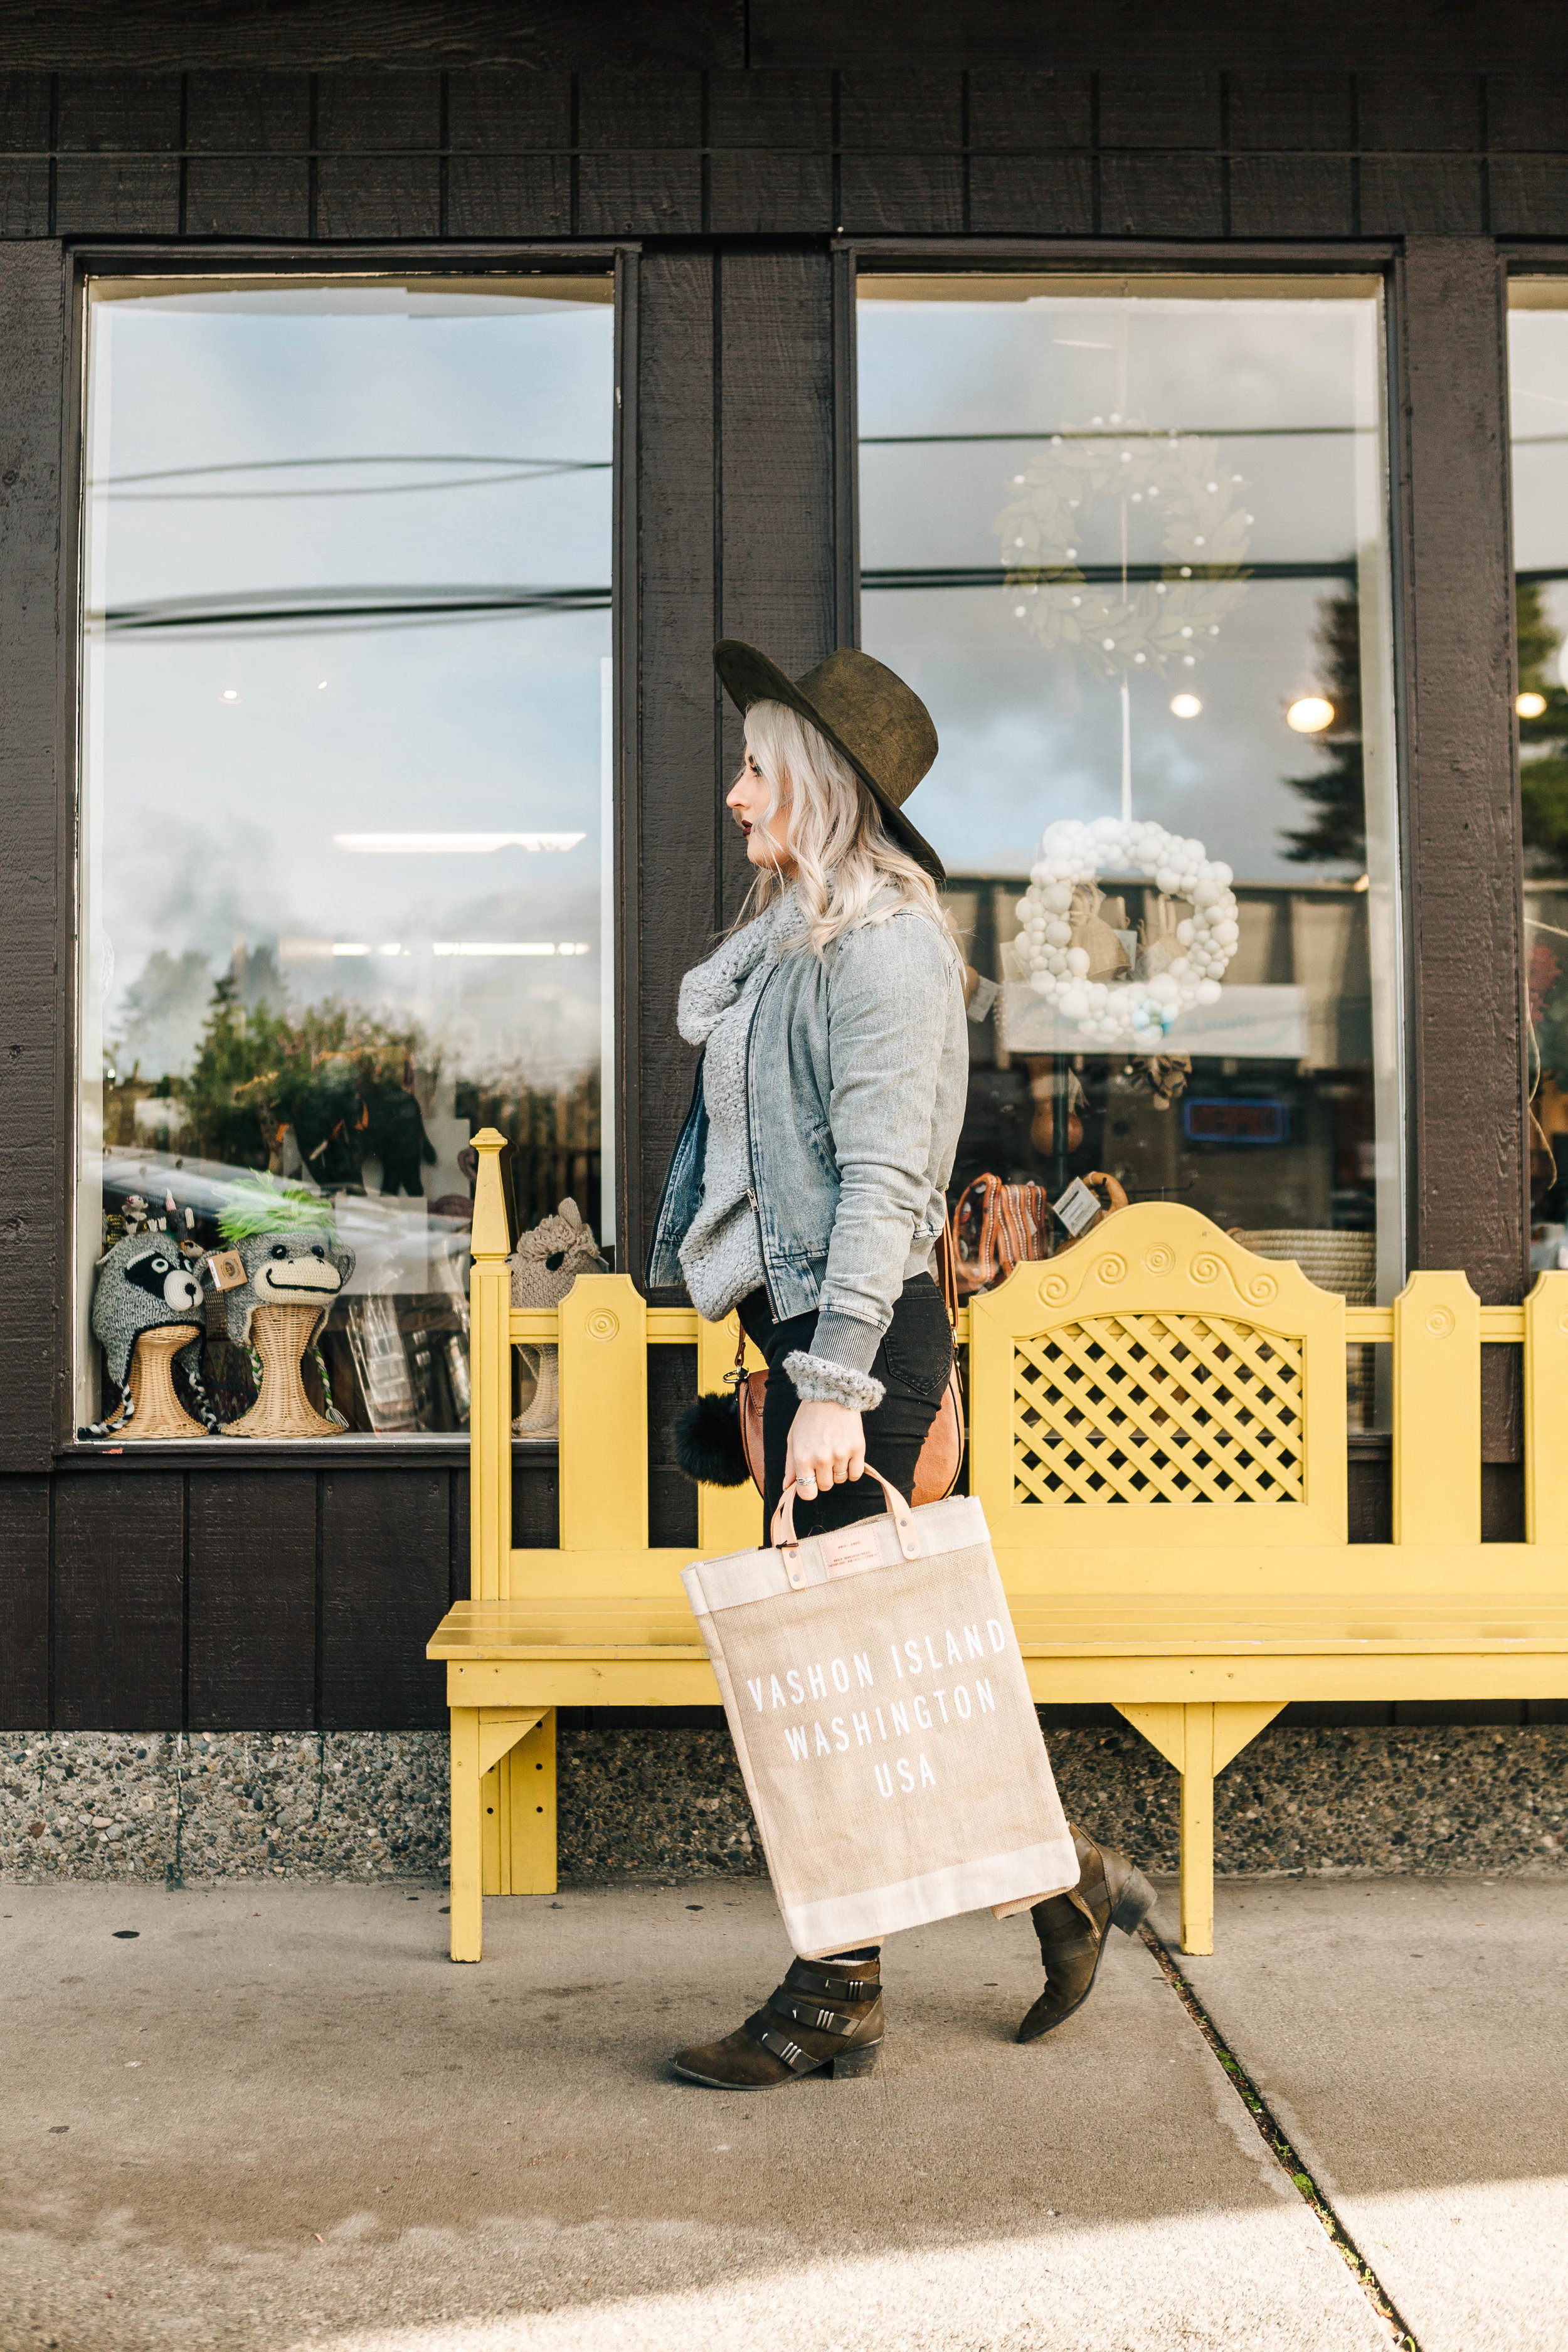 Vashon Island Apolis bag featured by Giraffe.